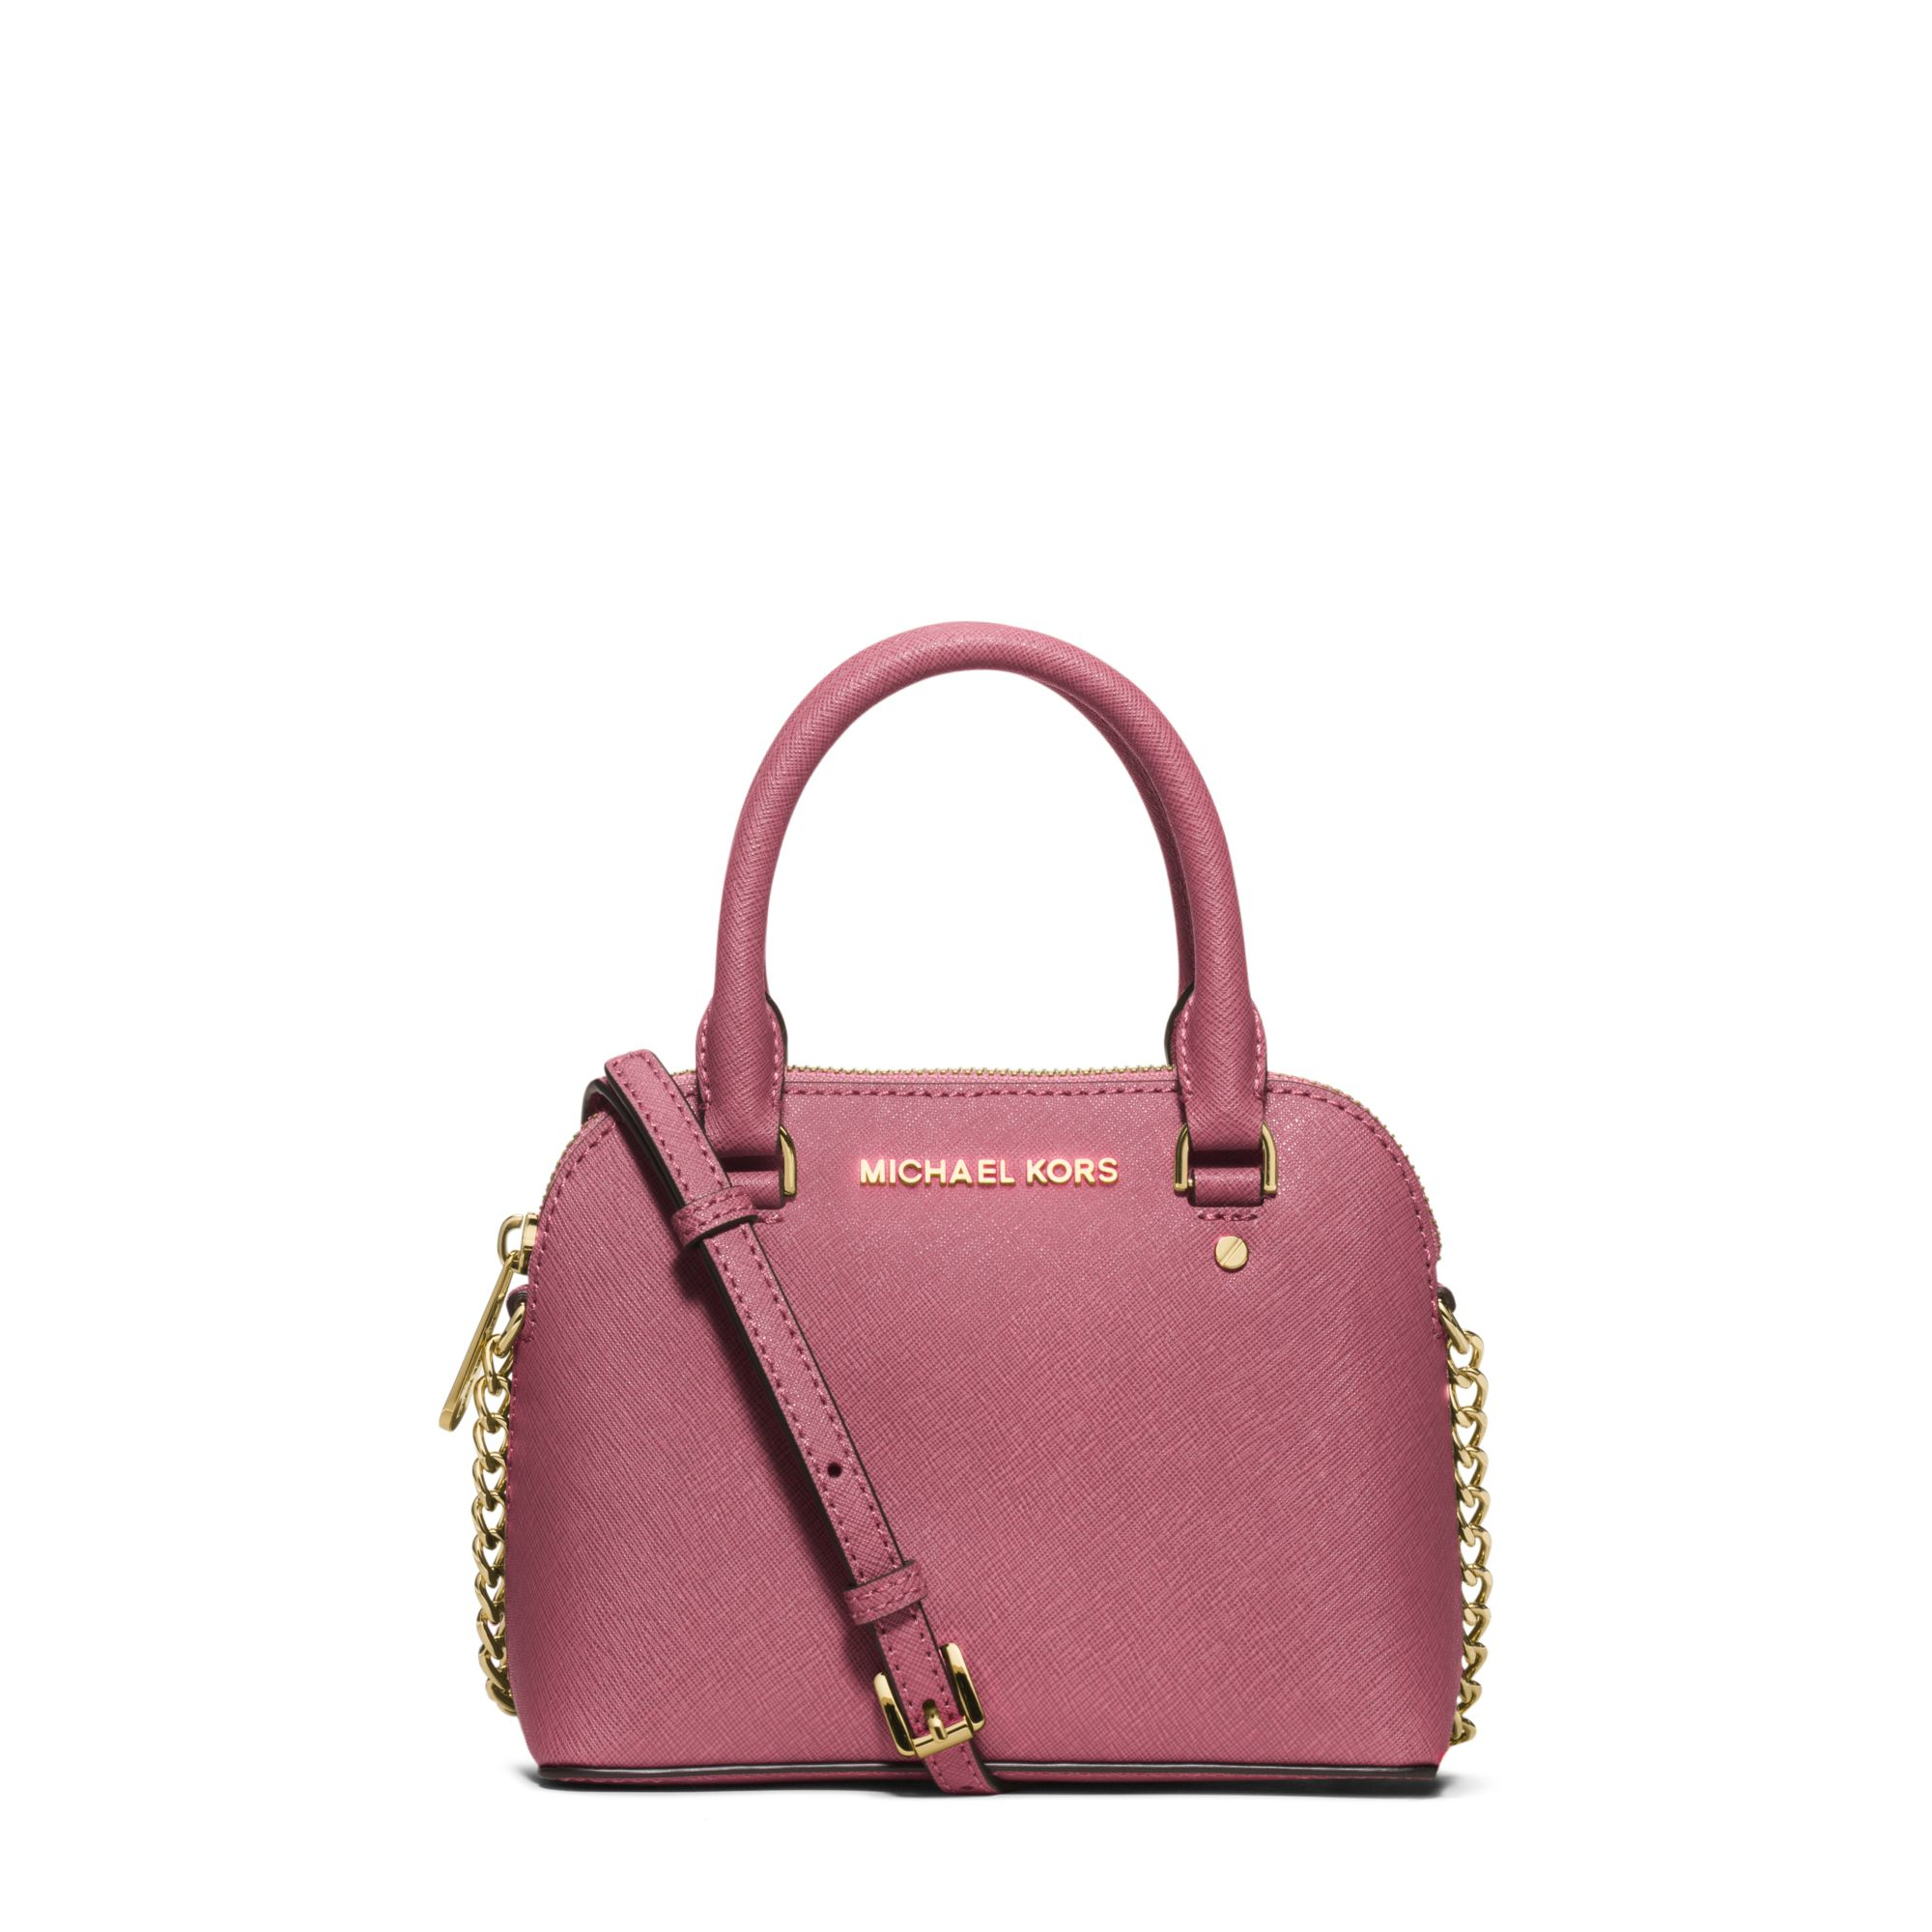 michael kors cindy extra small saffiano leather crossbody in pink tulip lyst. Black Bedroom Furniture Sets. Home Design Ideas